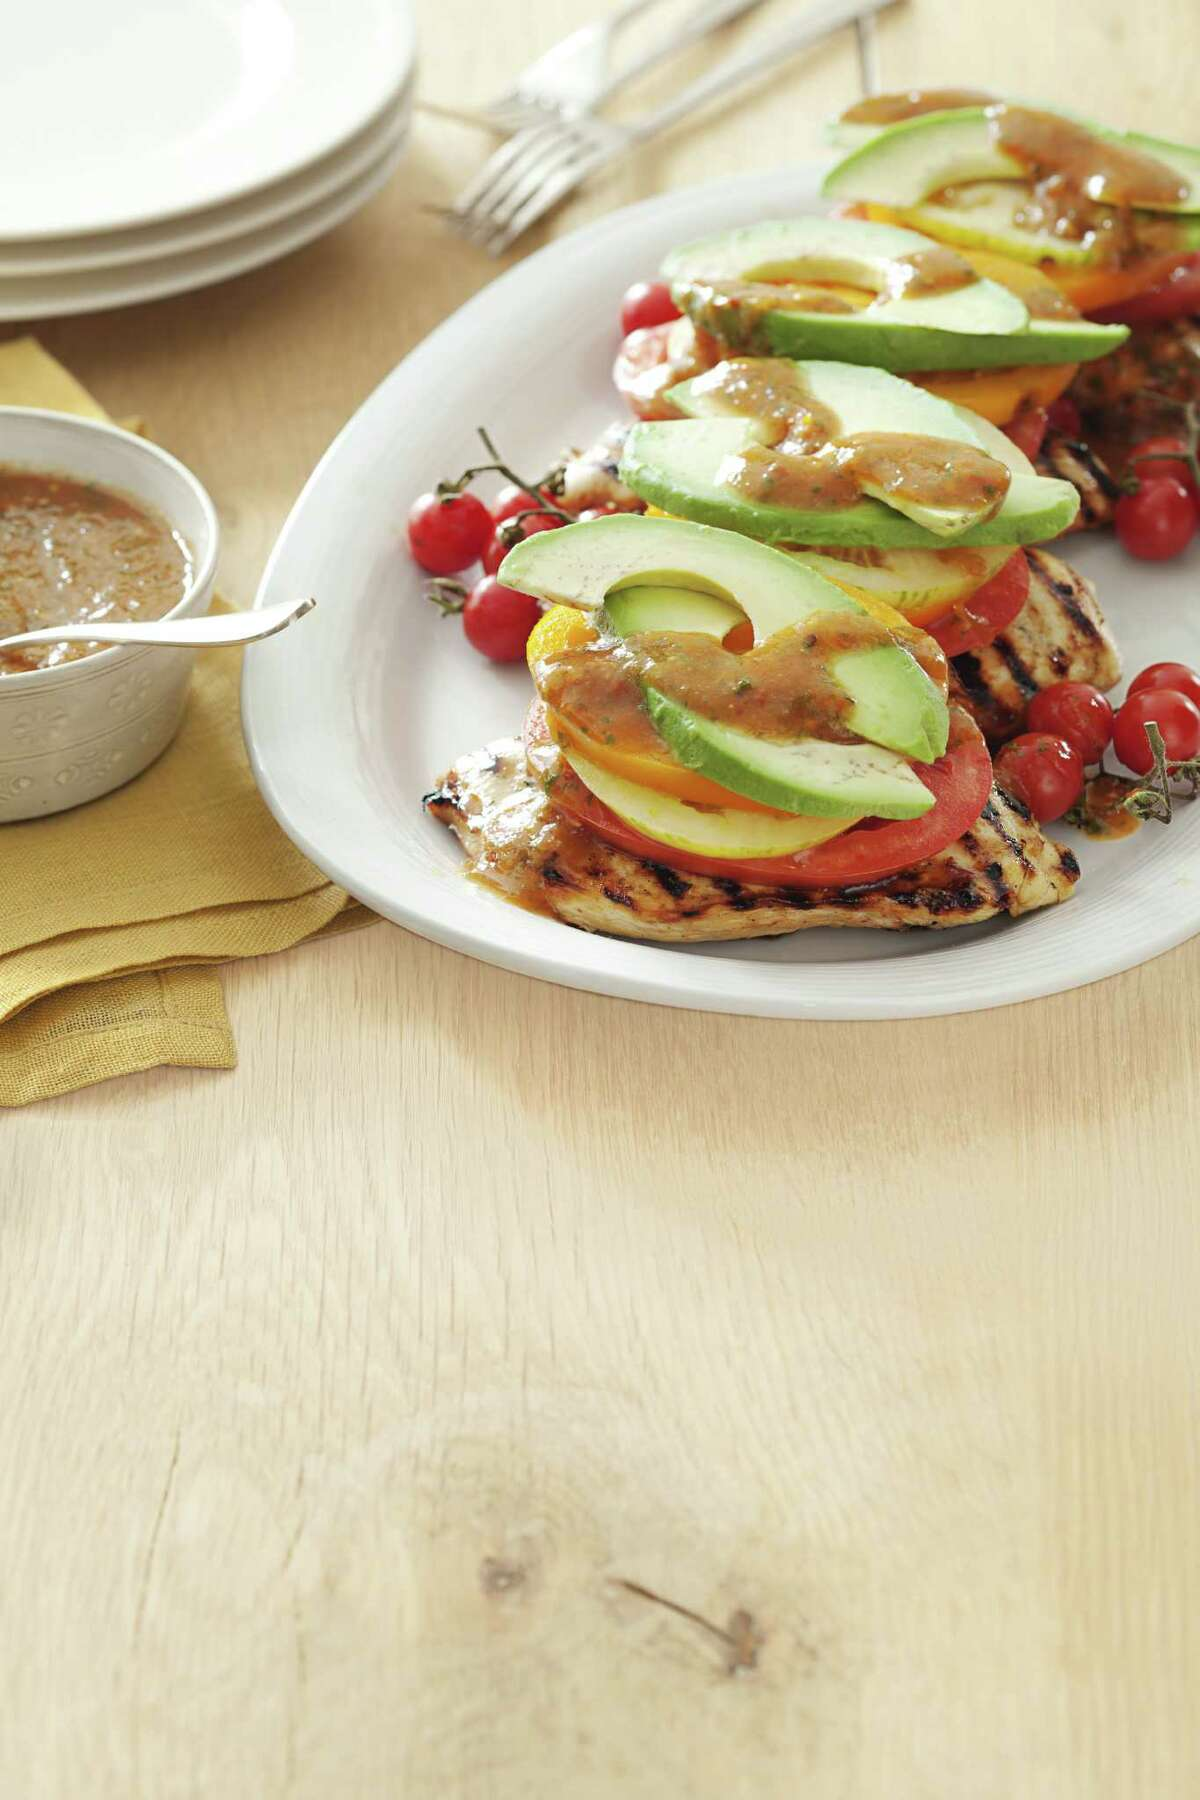 Sweet Chipotle Chicken Stacks These delicious stacks contain 280 calories, 11g fat, 78mg cholesterol, 335mg sodium, 16g carbohydrates, 6g fiber and 32g protein per serving. Find the recipe here.